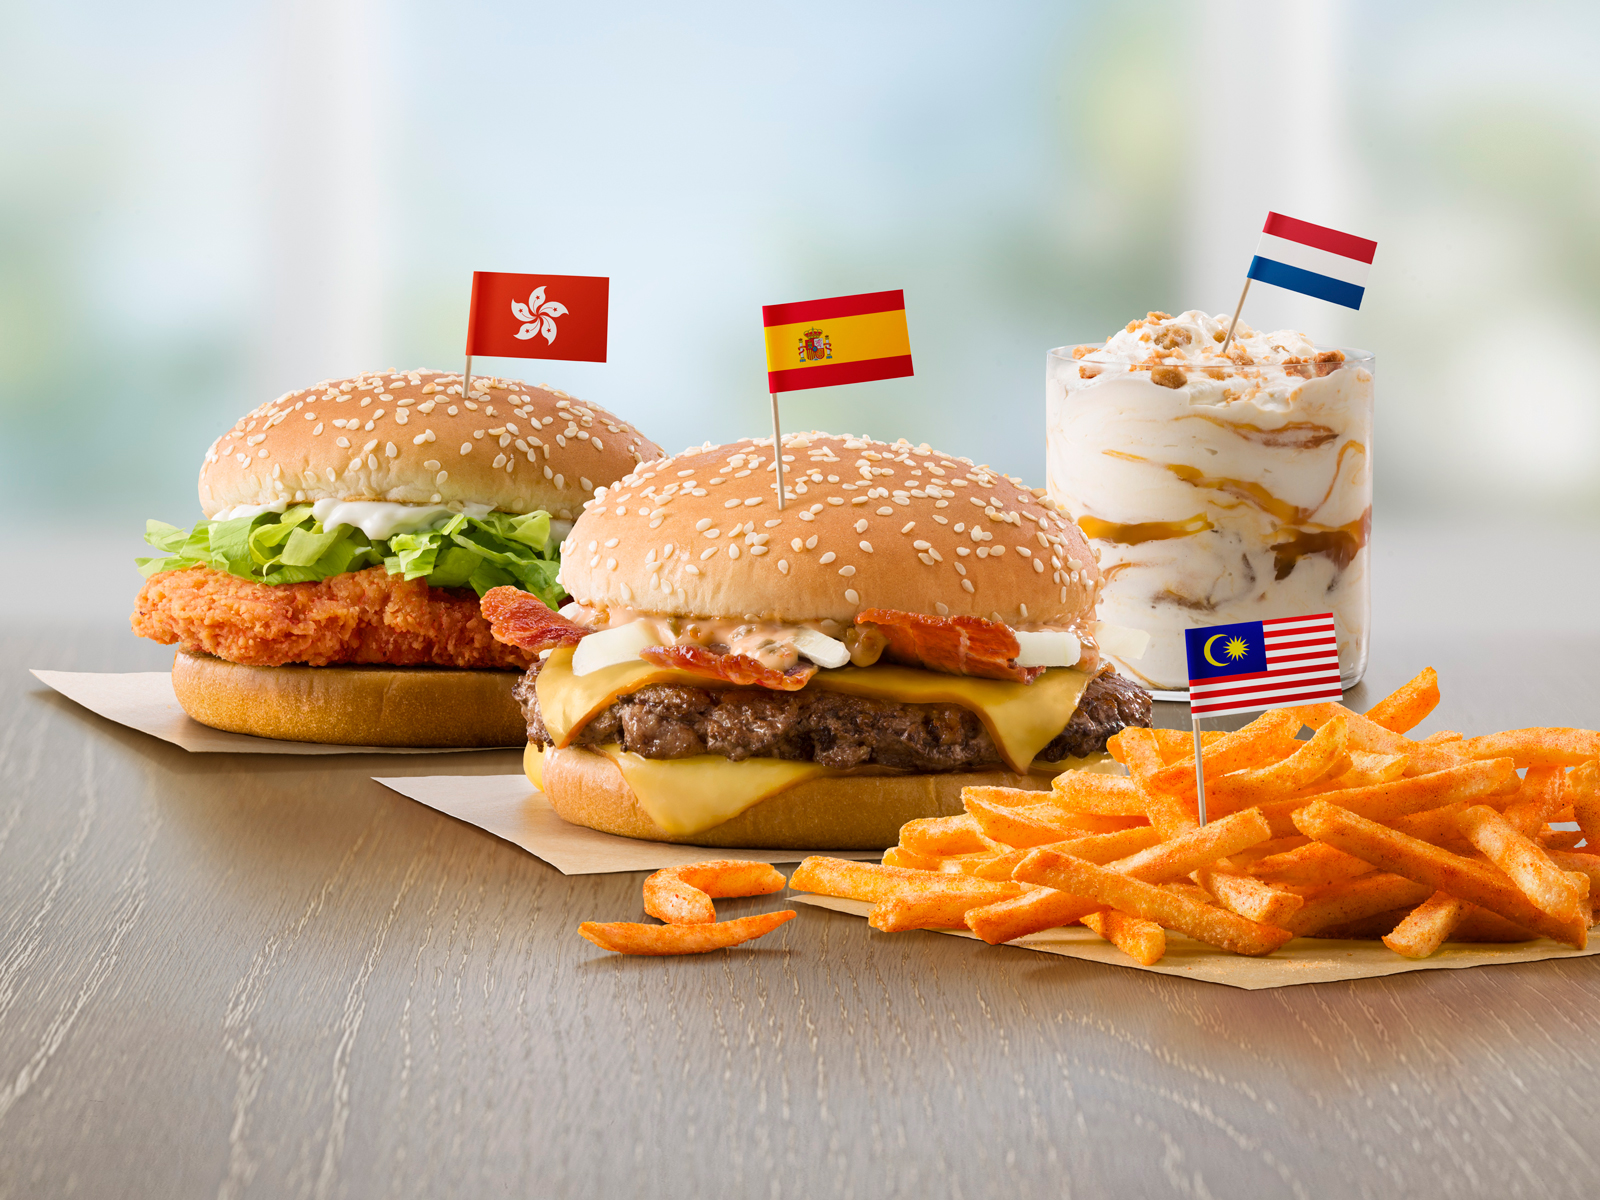 McDonald's Tests Four International Menu Items in U.S. Restaurants